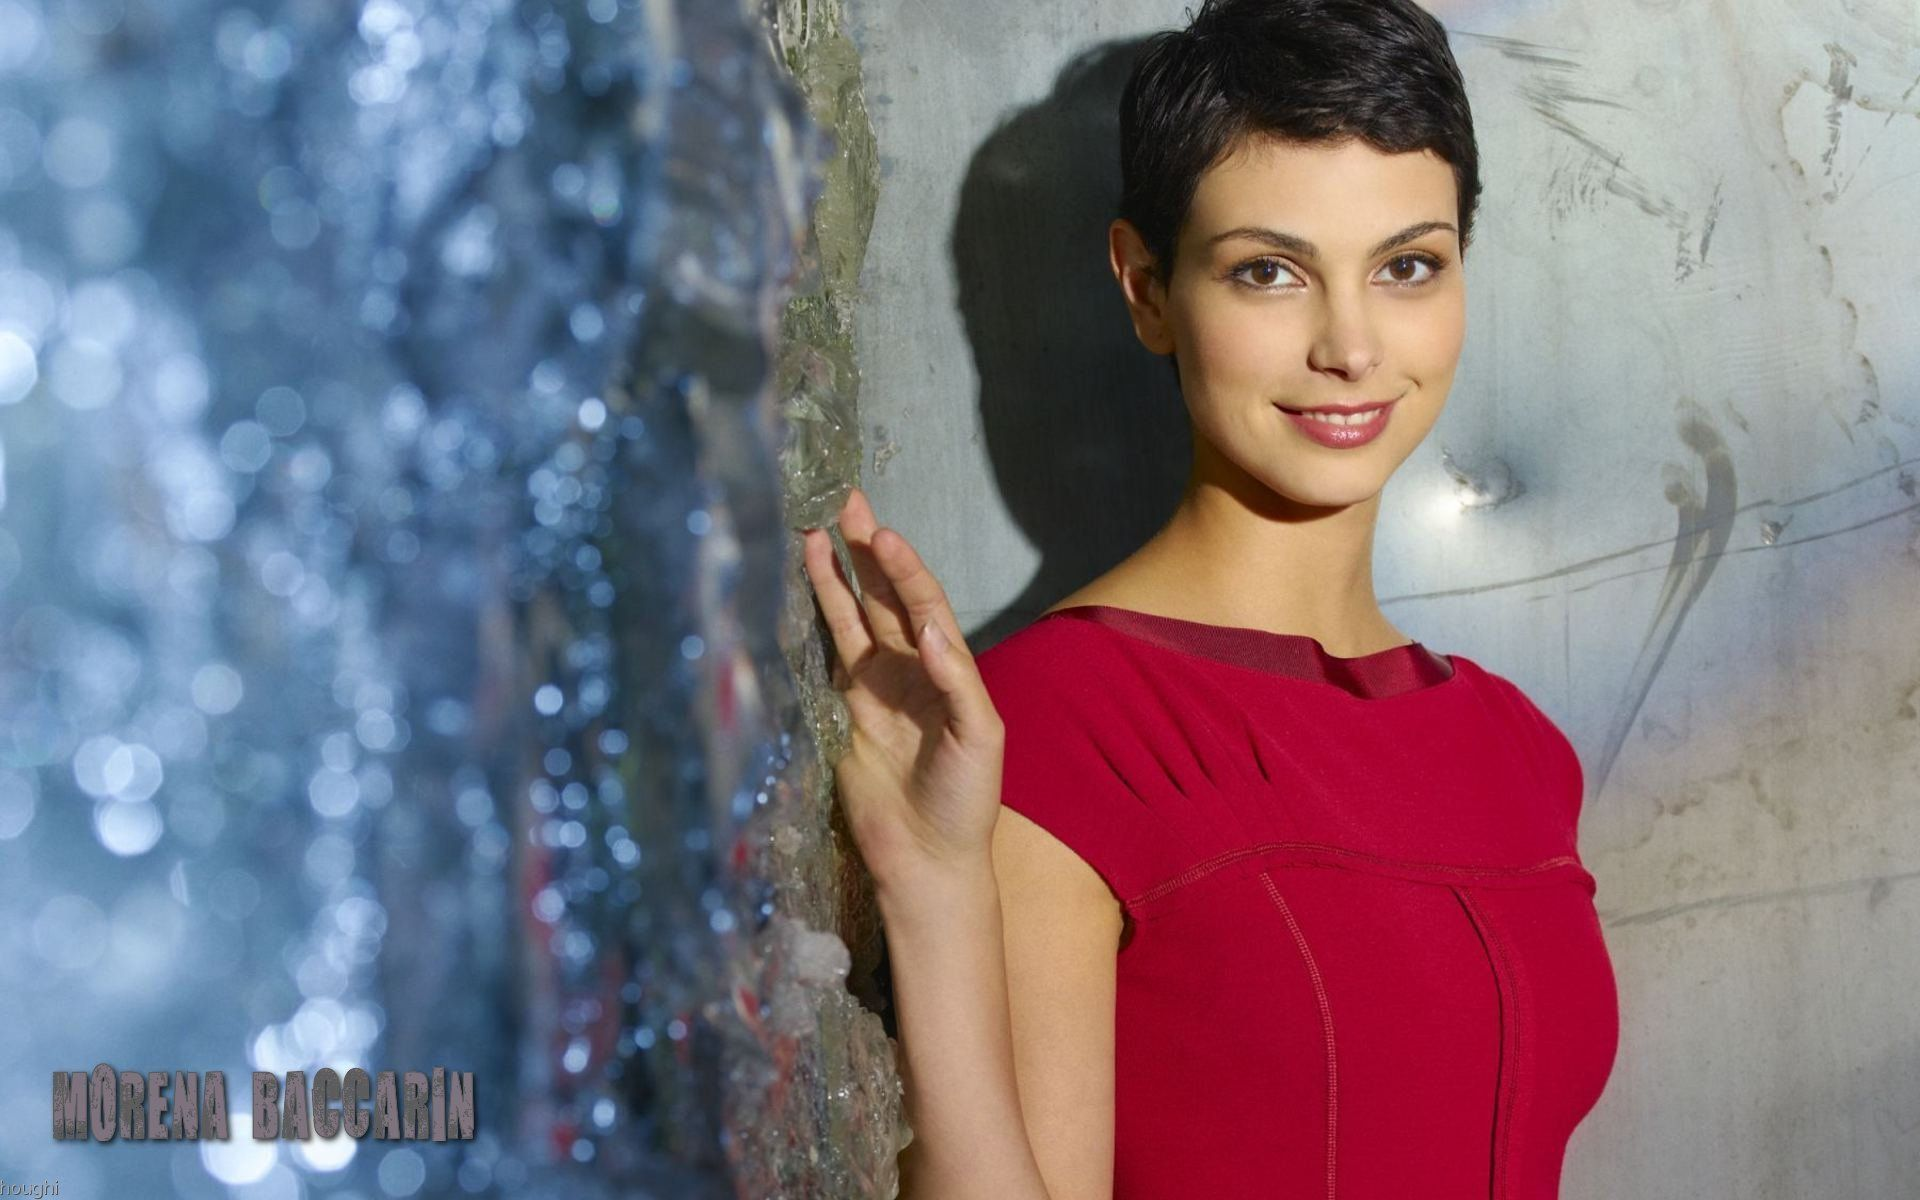 Morena Baccarin's quote #3